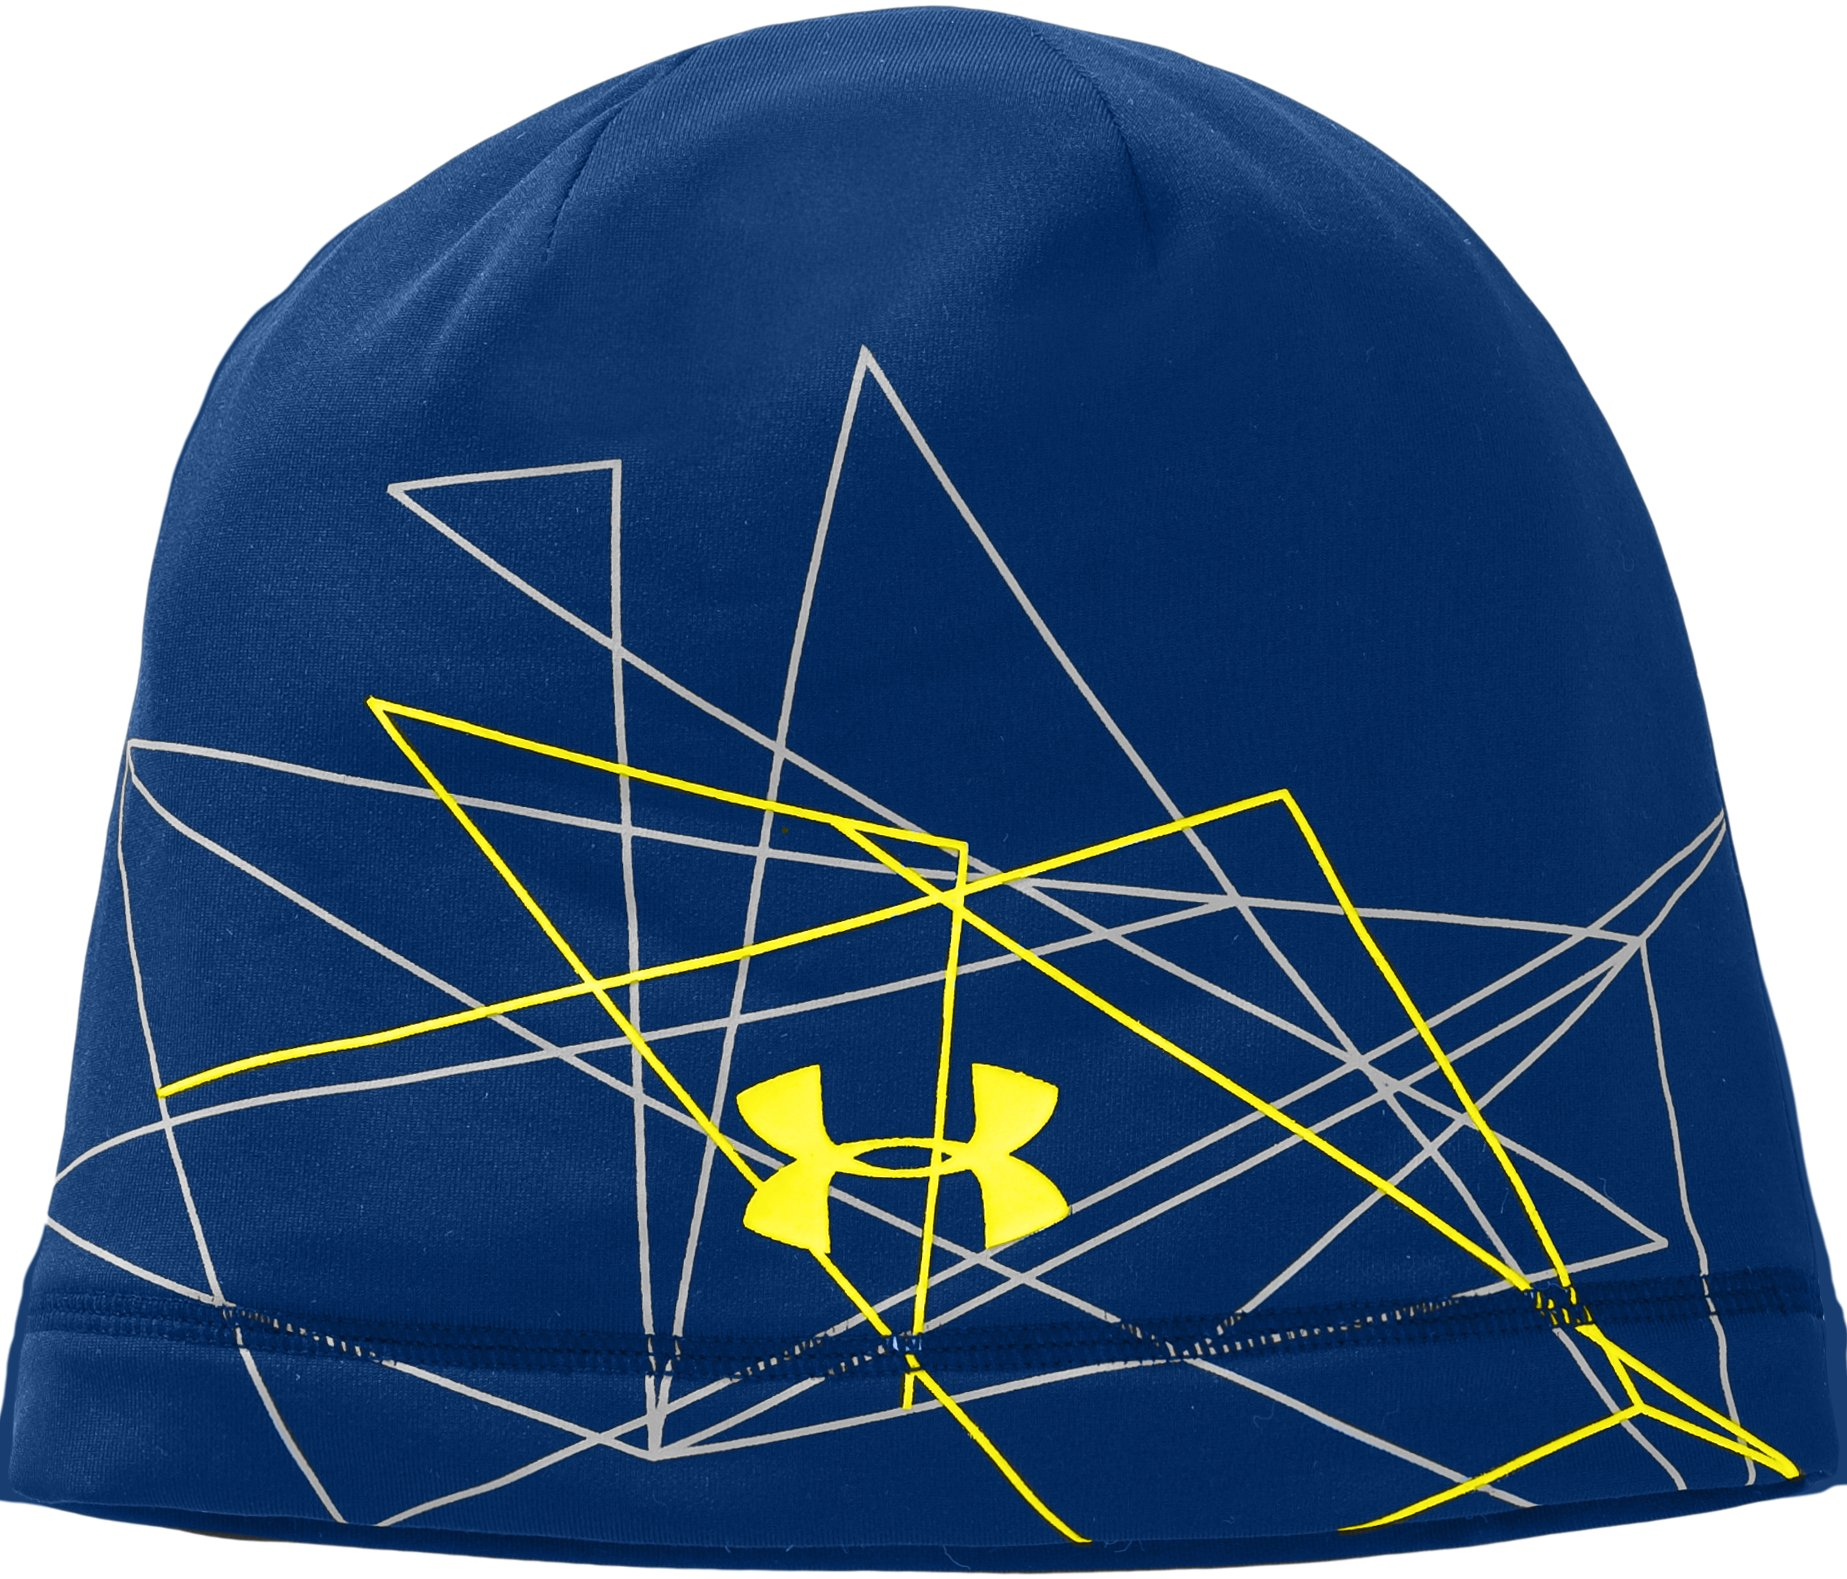 Men's UA Glow-in-the-Dark Running Beanie, Lightning, zoomed image